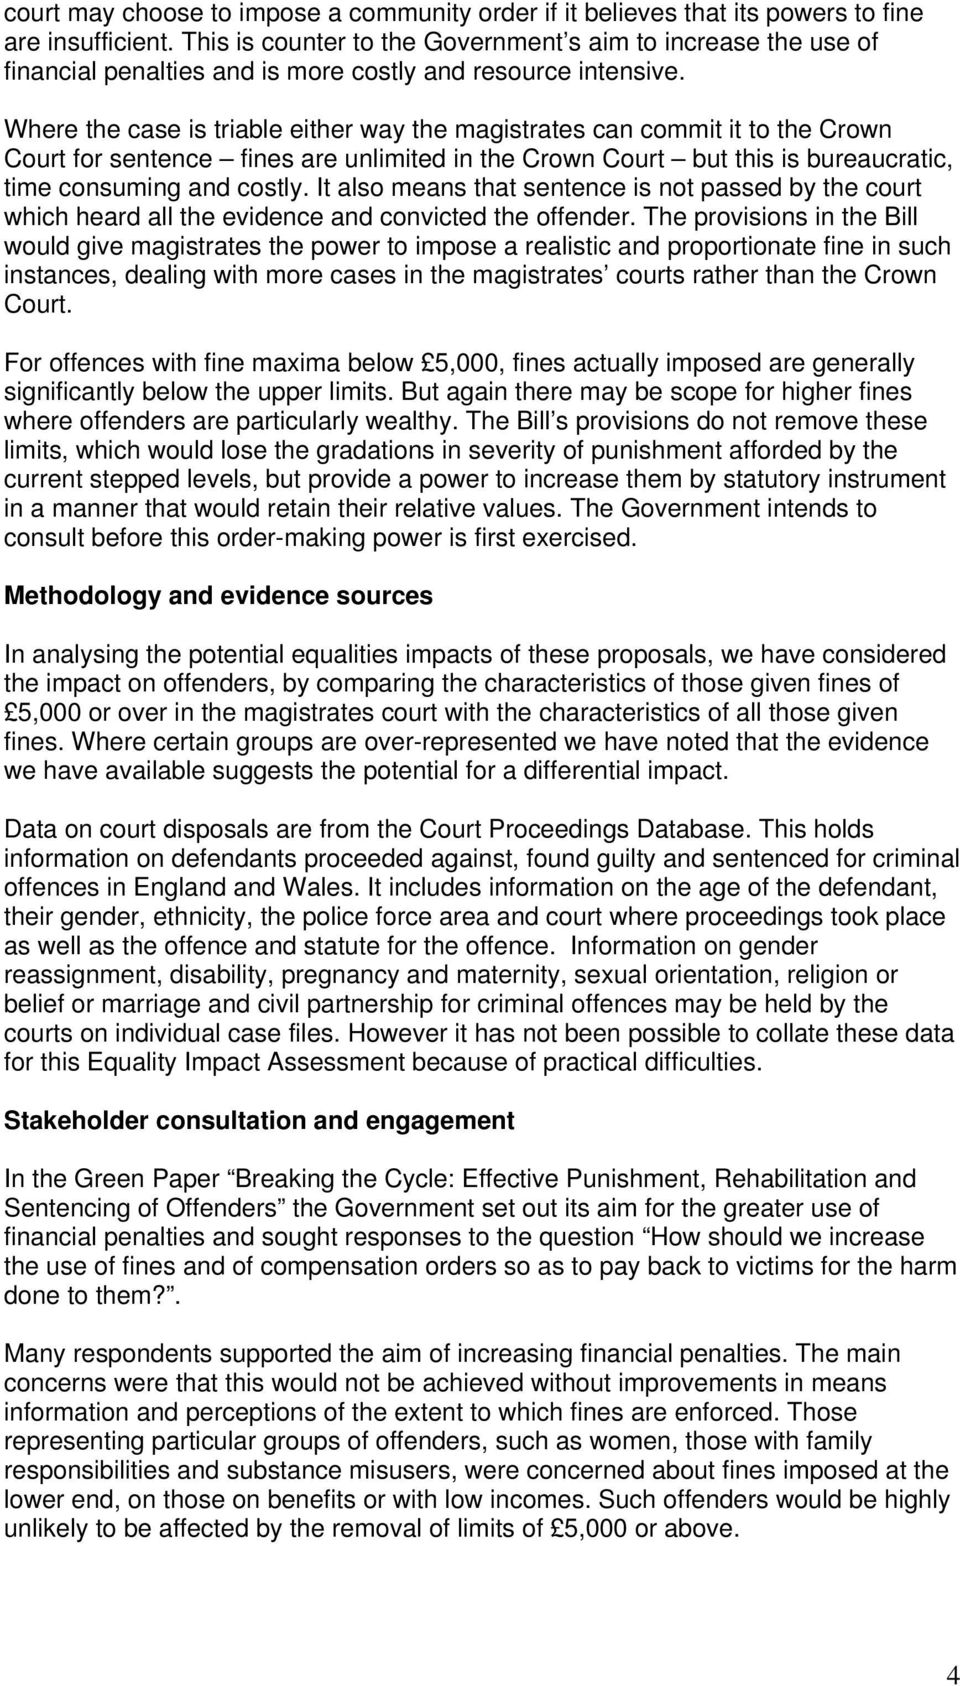 Where the case is triable either way the magistrates can commit it to the Crown Court for sentence fines are unlimited in the Crown Court but this is bureaucratic, time consuming and costly.